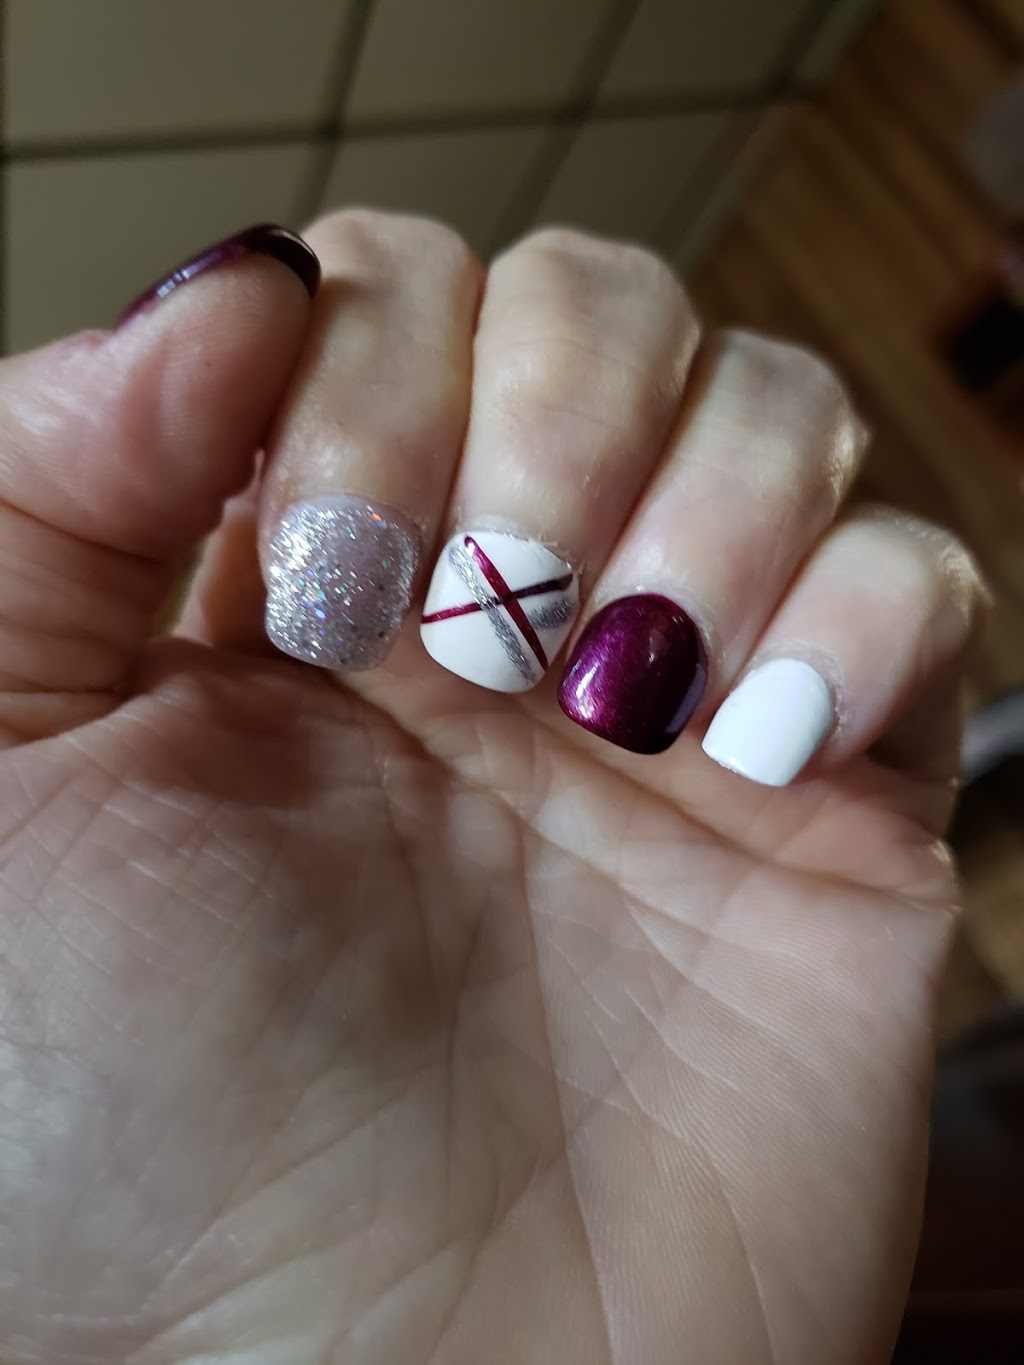 Johns Nails & Spa | spa | 3750 Tecumseh Rd E, Windsor, ON N8W 1H9, Canada | 5199482200 OR +1 519-948-2200